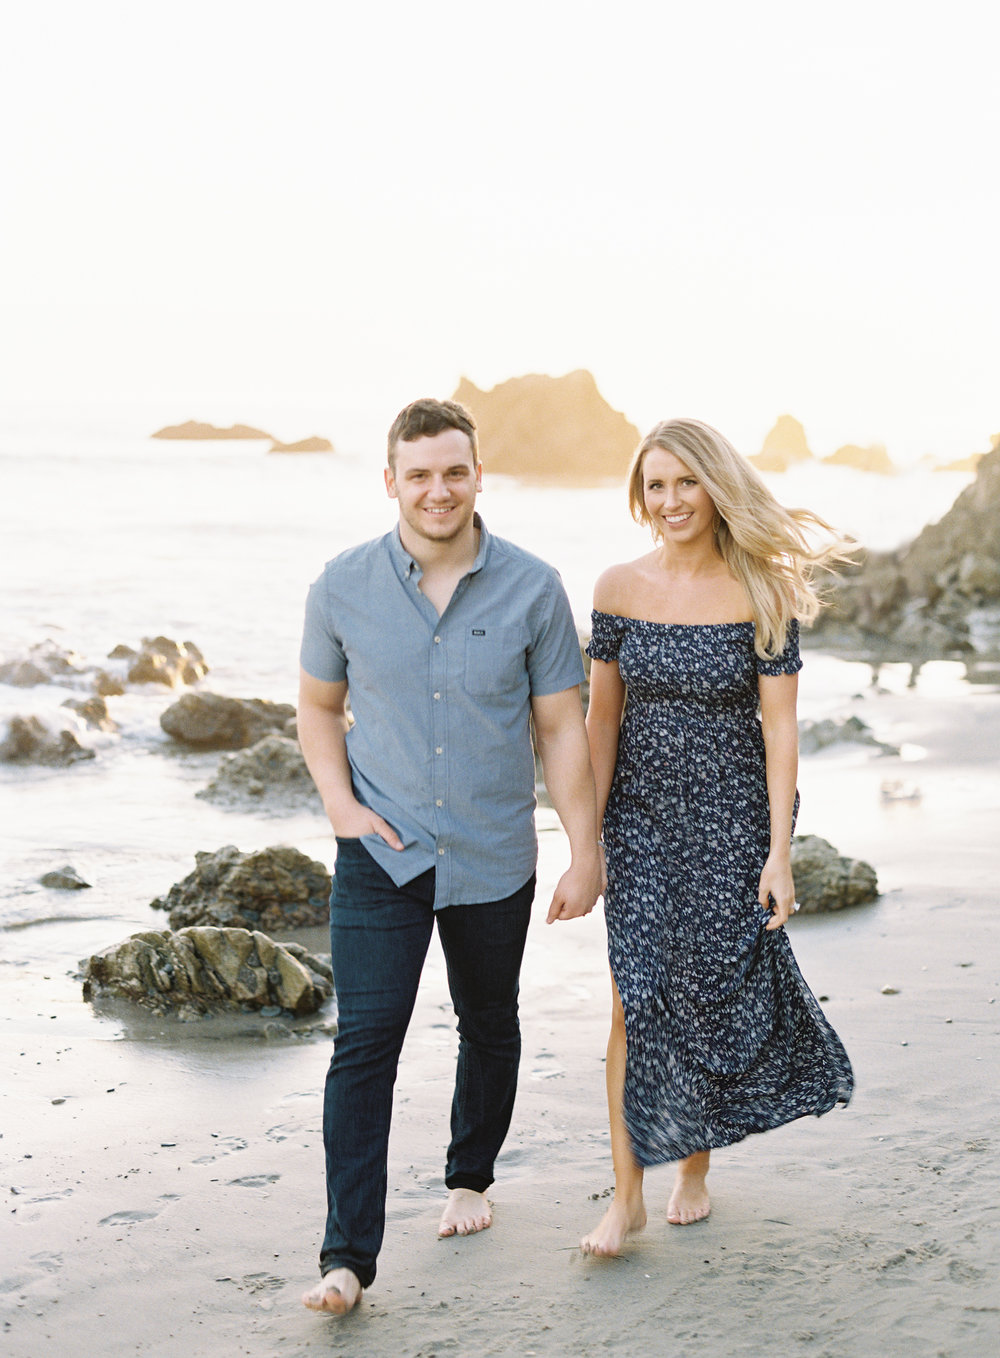 Taylor & Casey's Malibu Engagement-Carrie King Photographer-062.jpg